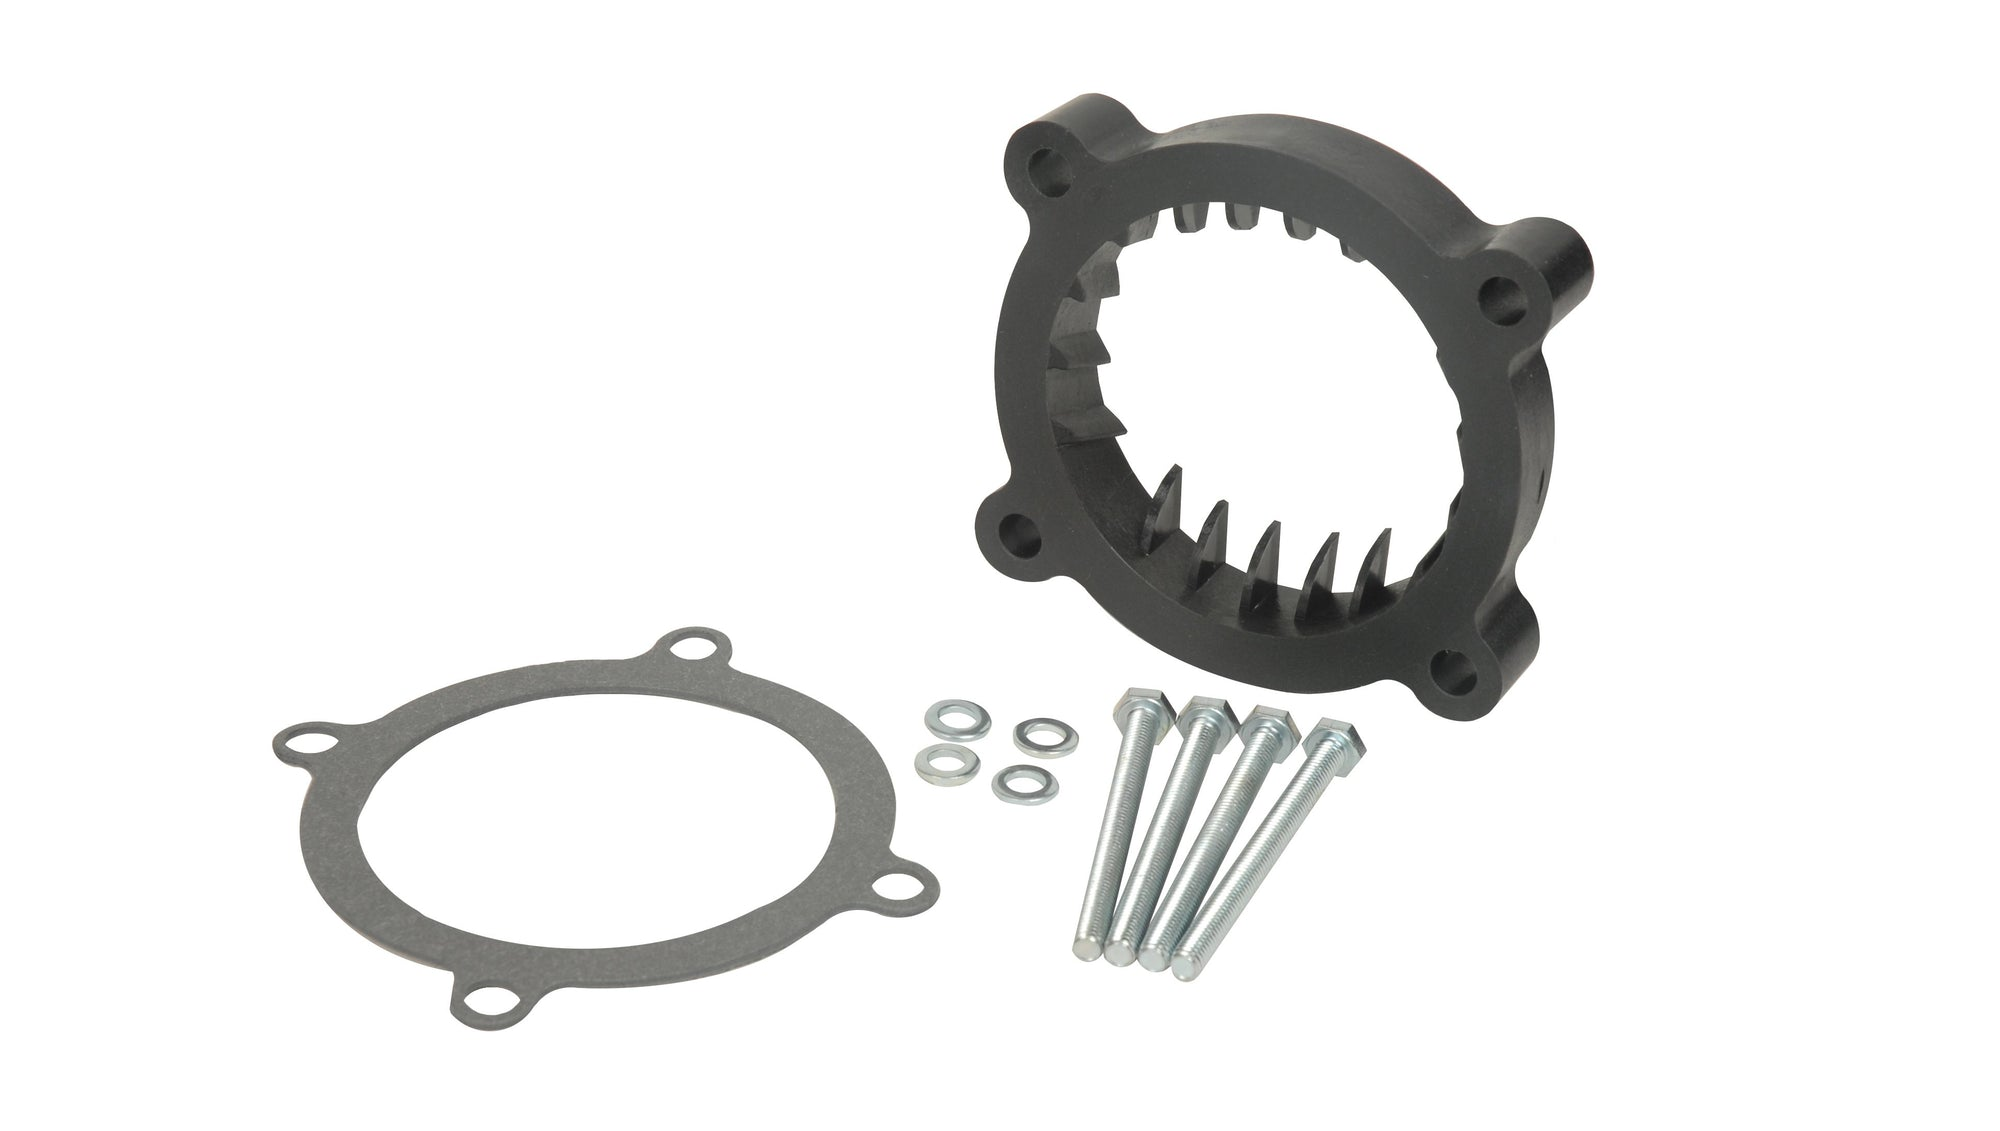 Throttle Body Spacer (729850) 2011-20 Ford Mustang GT 5.0L, Ford F-150 5.0L, 2011 Raptor 6.2L